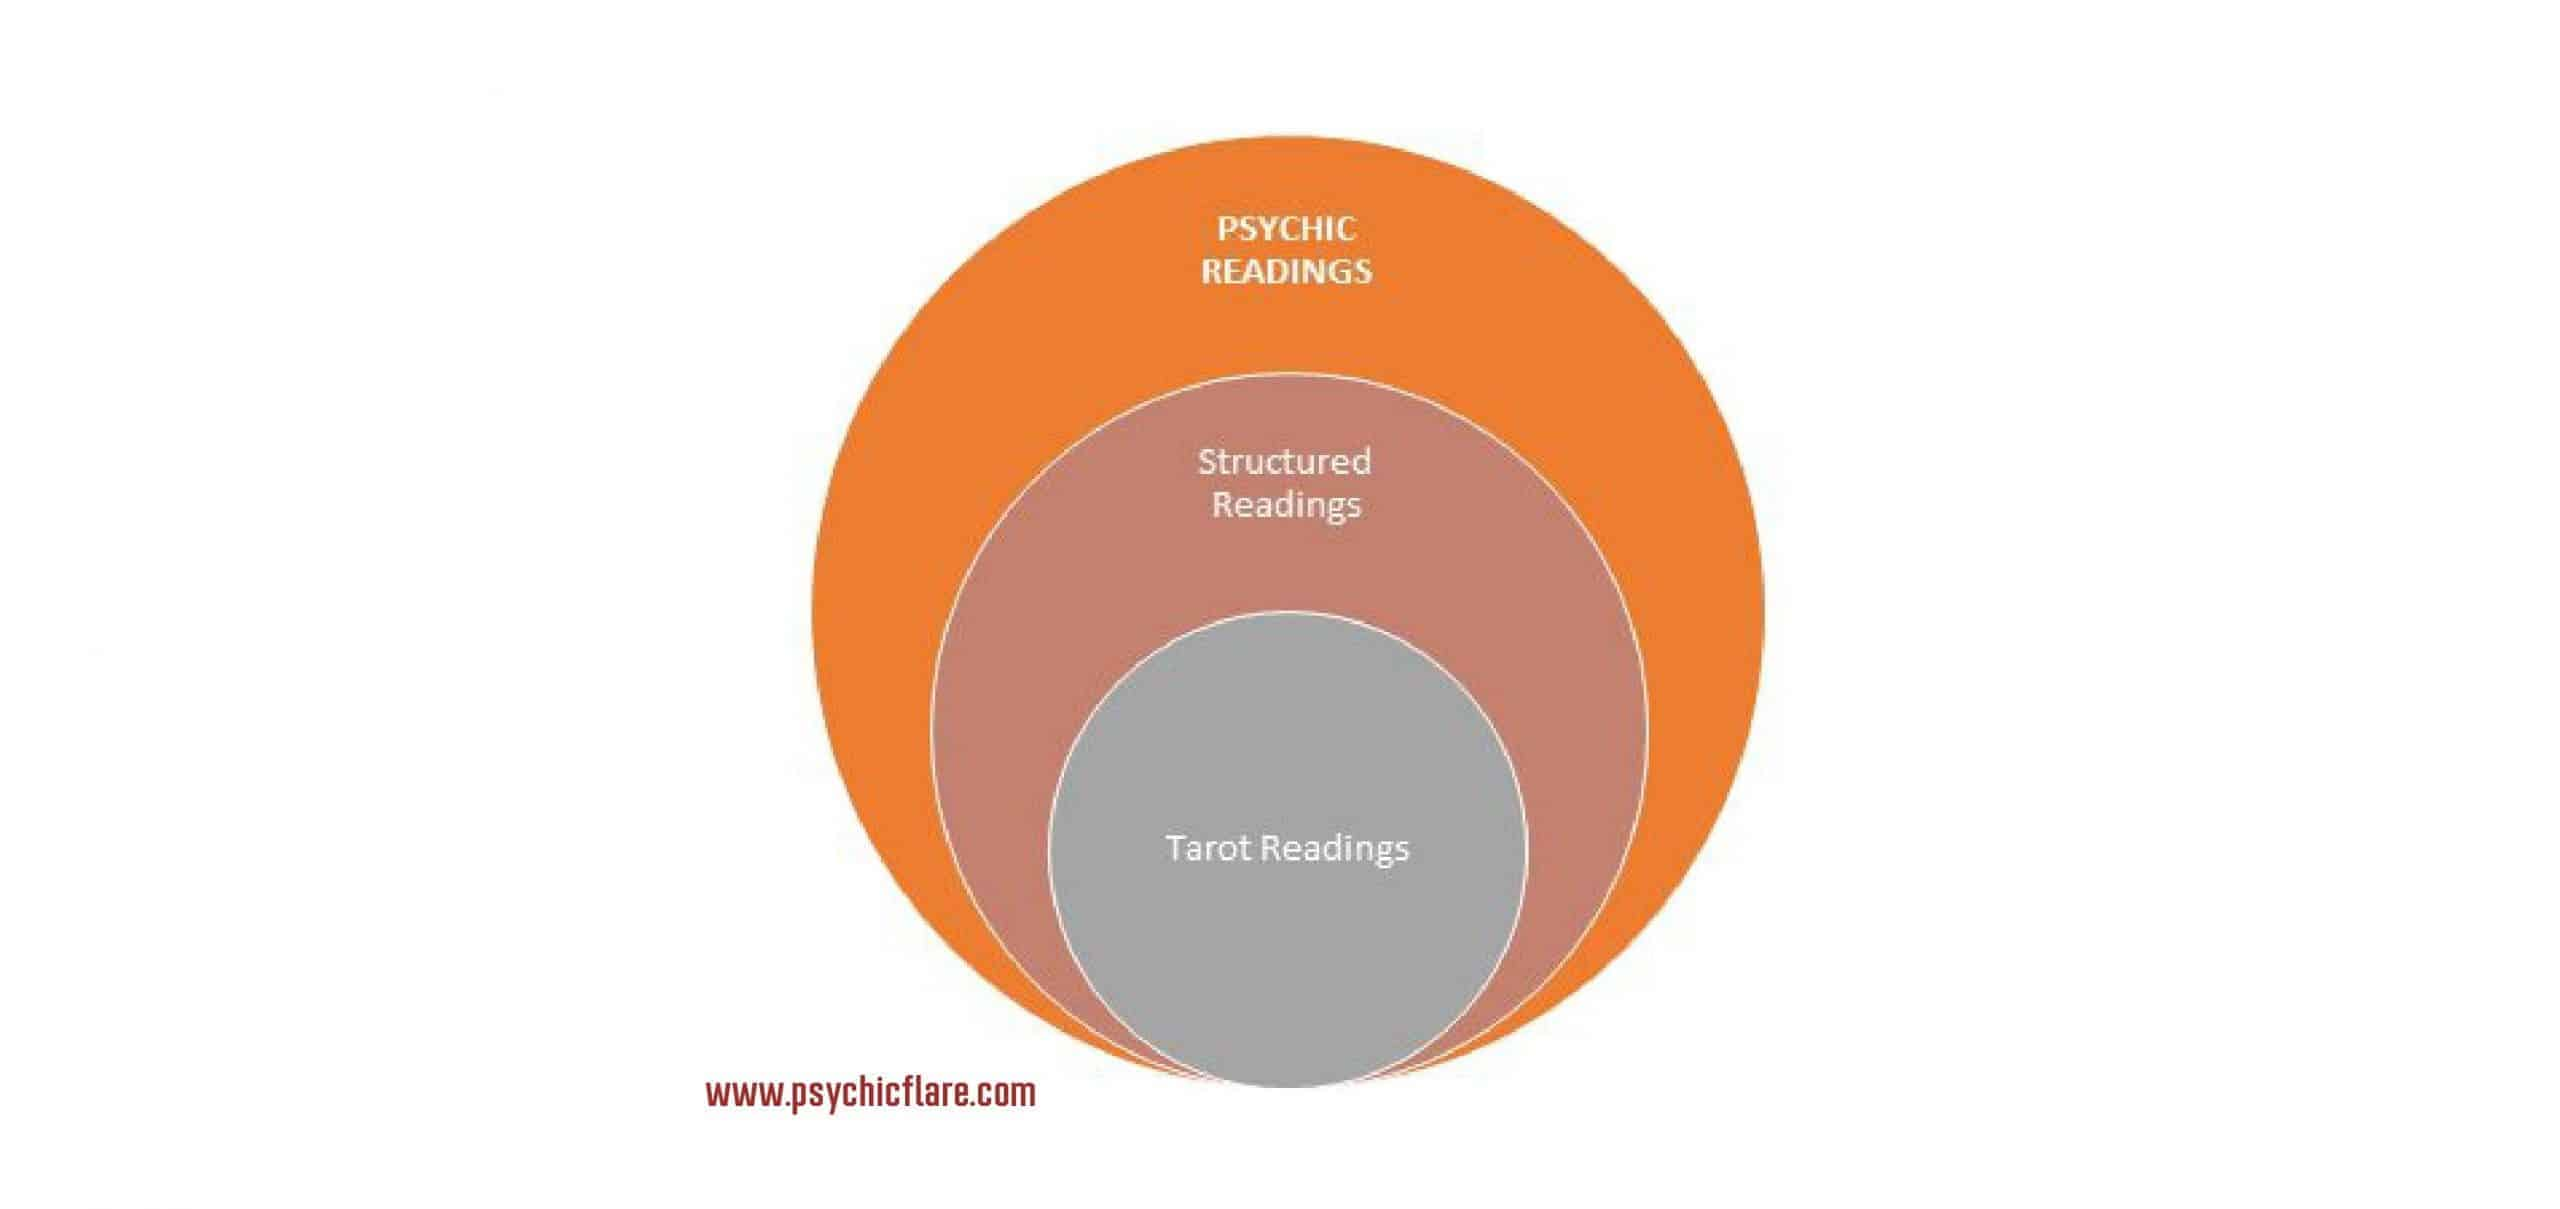 psychic and tarot reading diagram